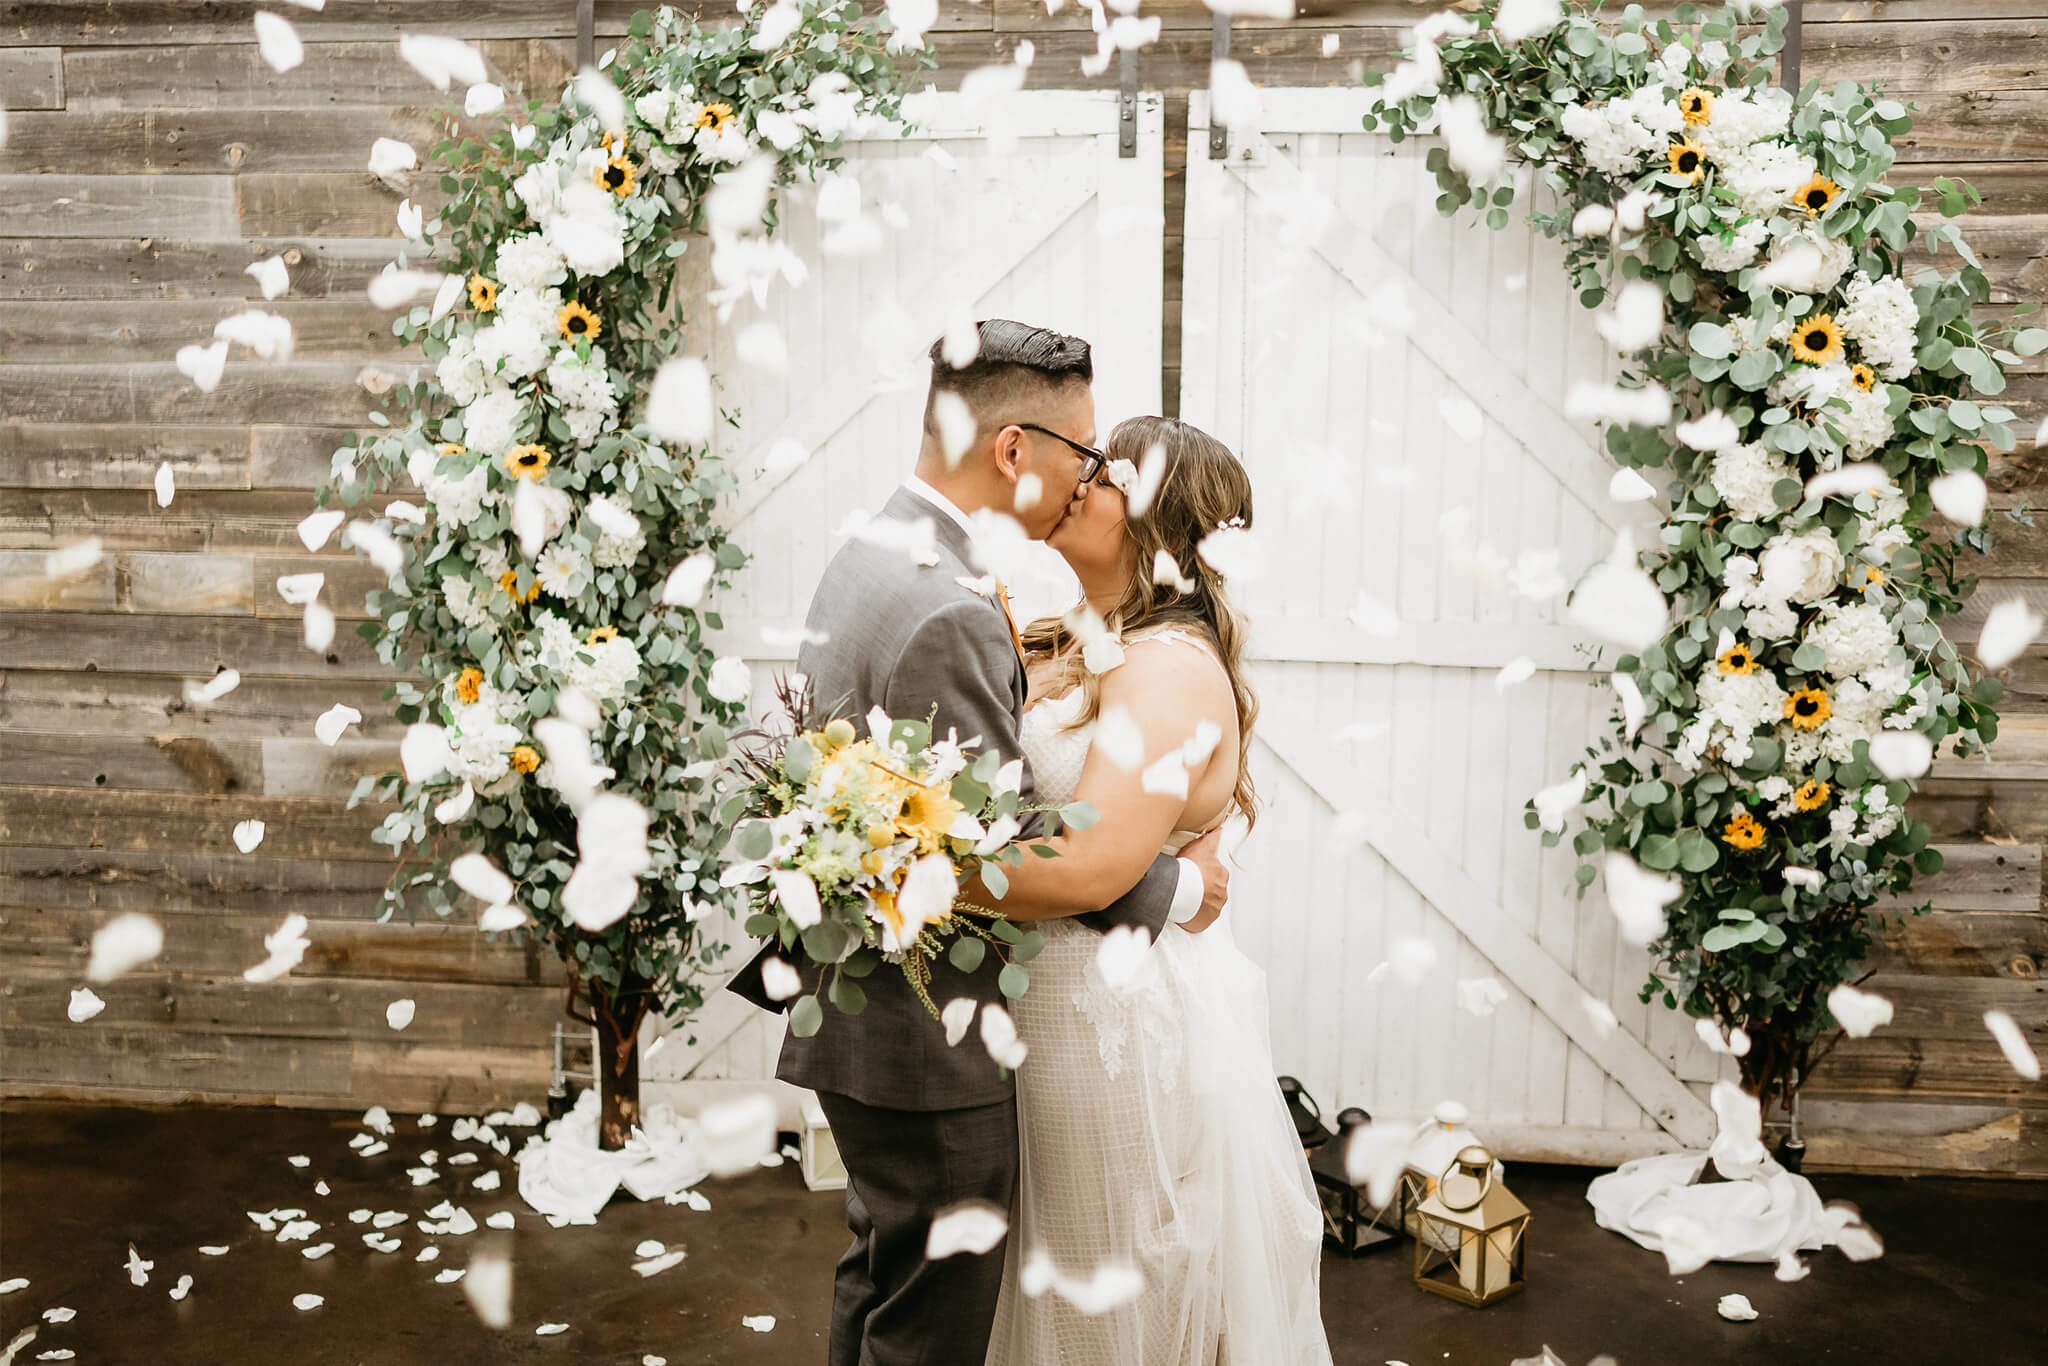 Nothing sweeter than a newlywed kiss! Congrats to this cute couple!